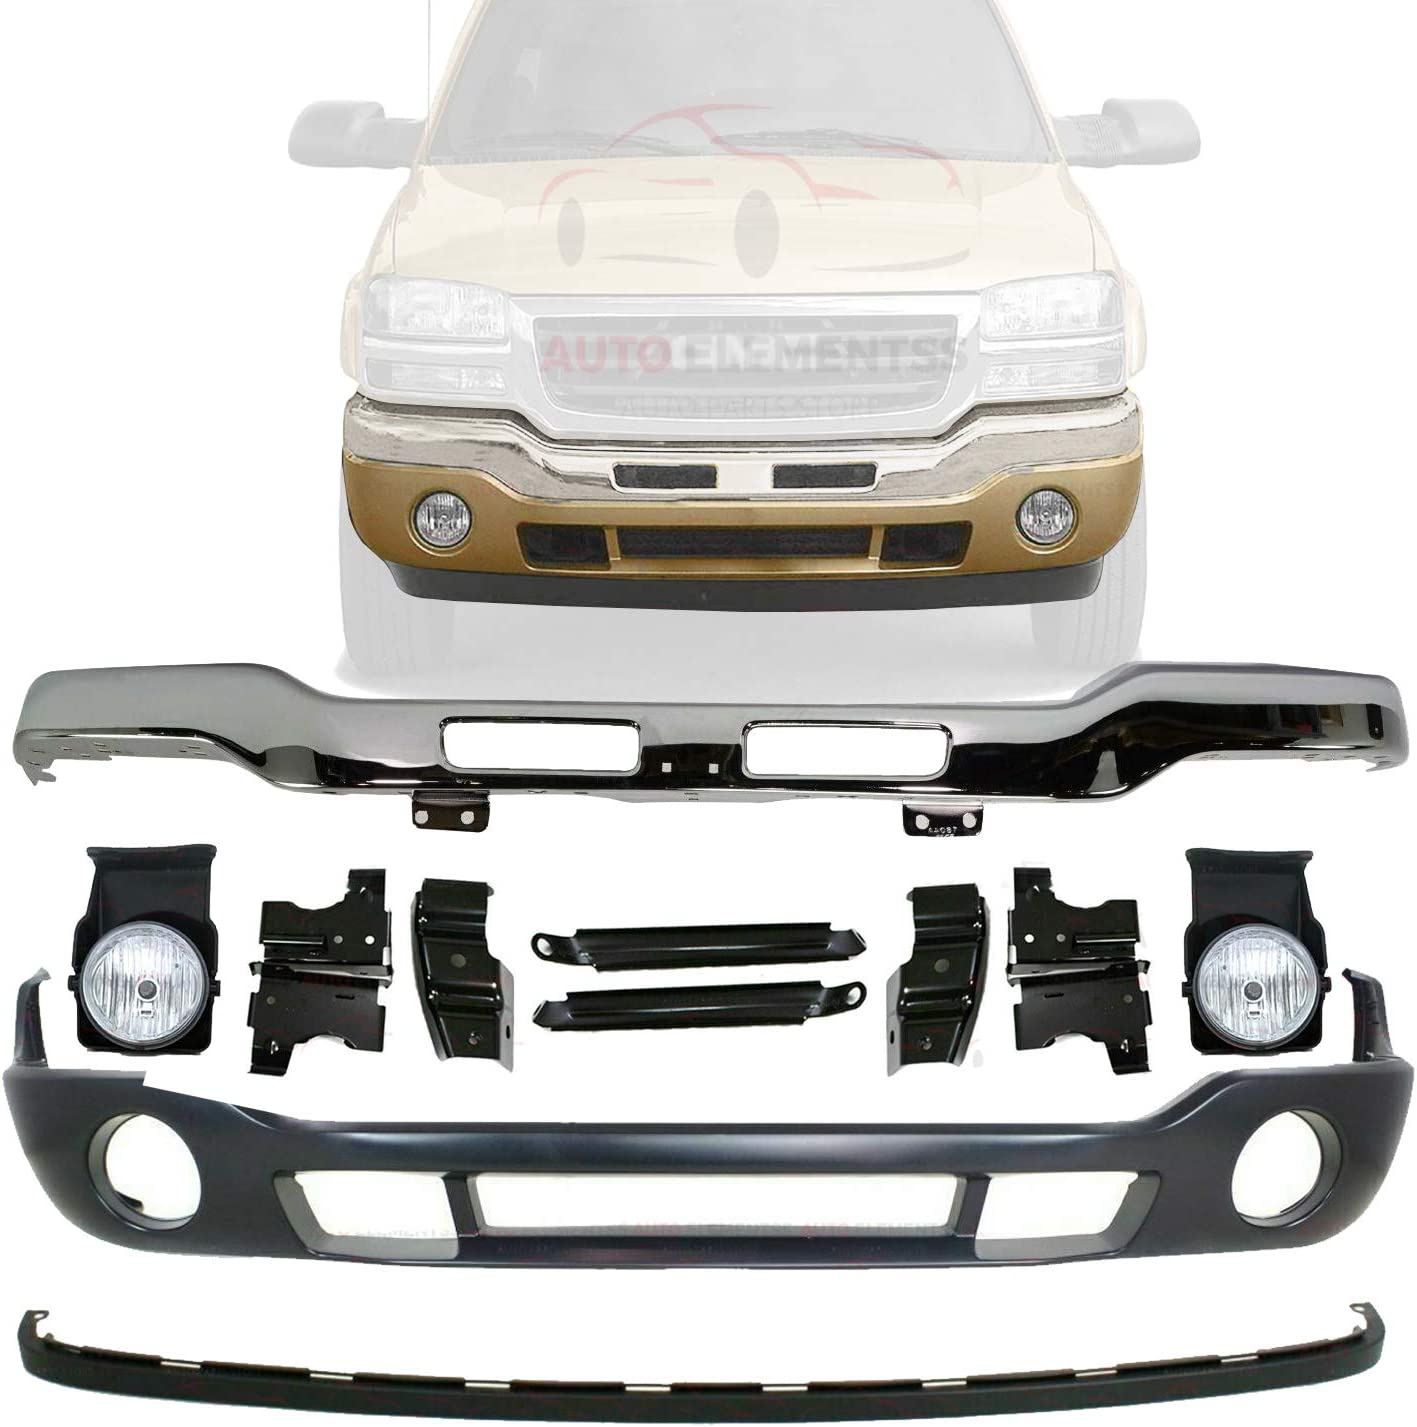 Buy New Front Bumper Chrome With Brackets Lower Valance Primed Extension Textured Fog Light Left Driver Right Passenger Side For 2003 2006 Gmc Sierra 1500 2500hd 3500 Direct Replacement Online In Indonesia B07vf768x7